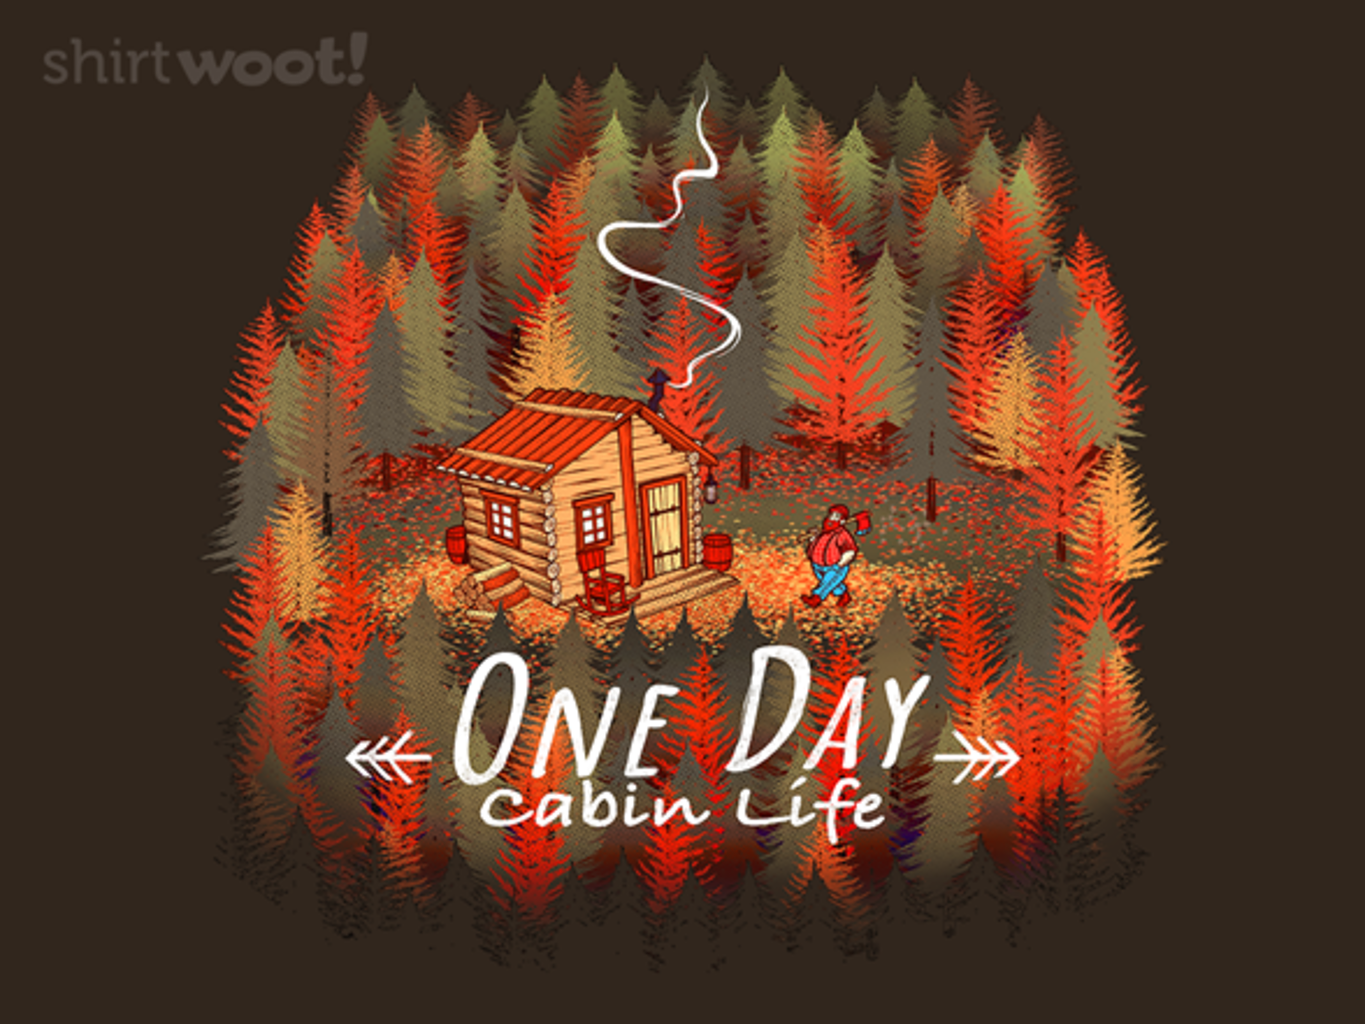 Woot!: One Day, Cabin Life